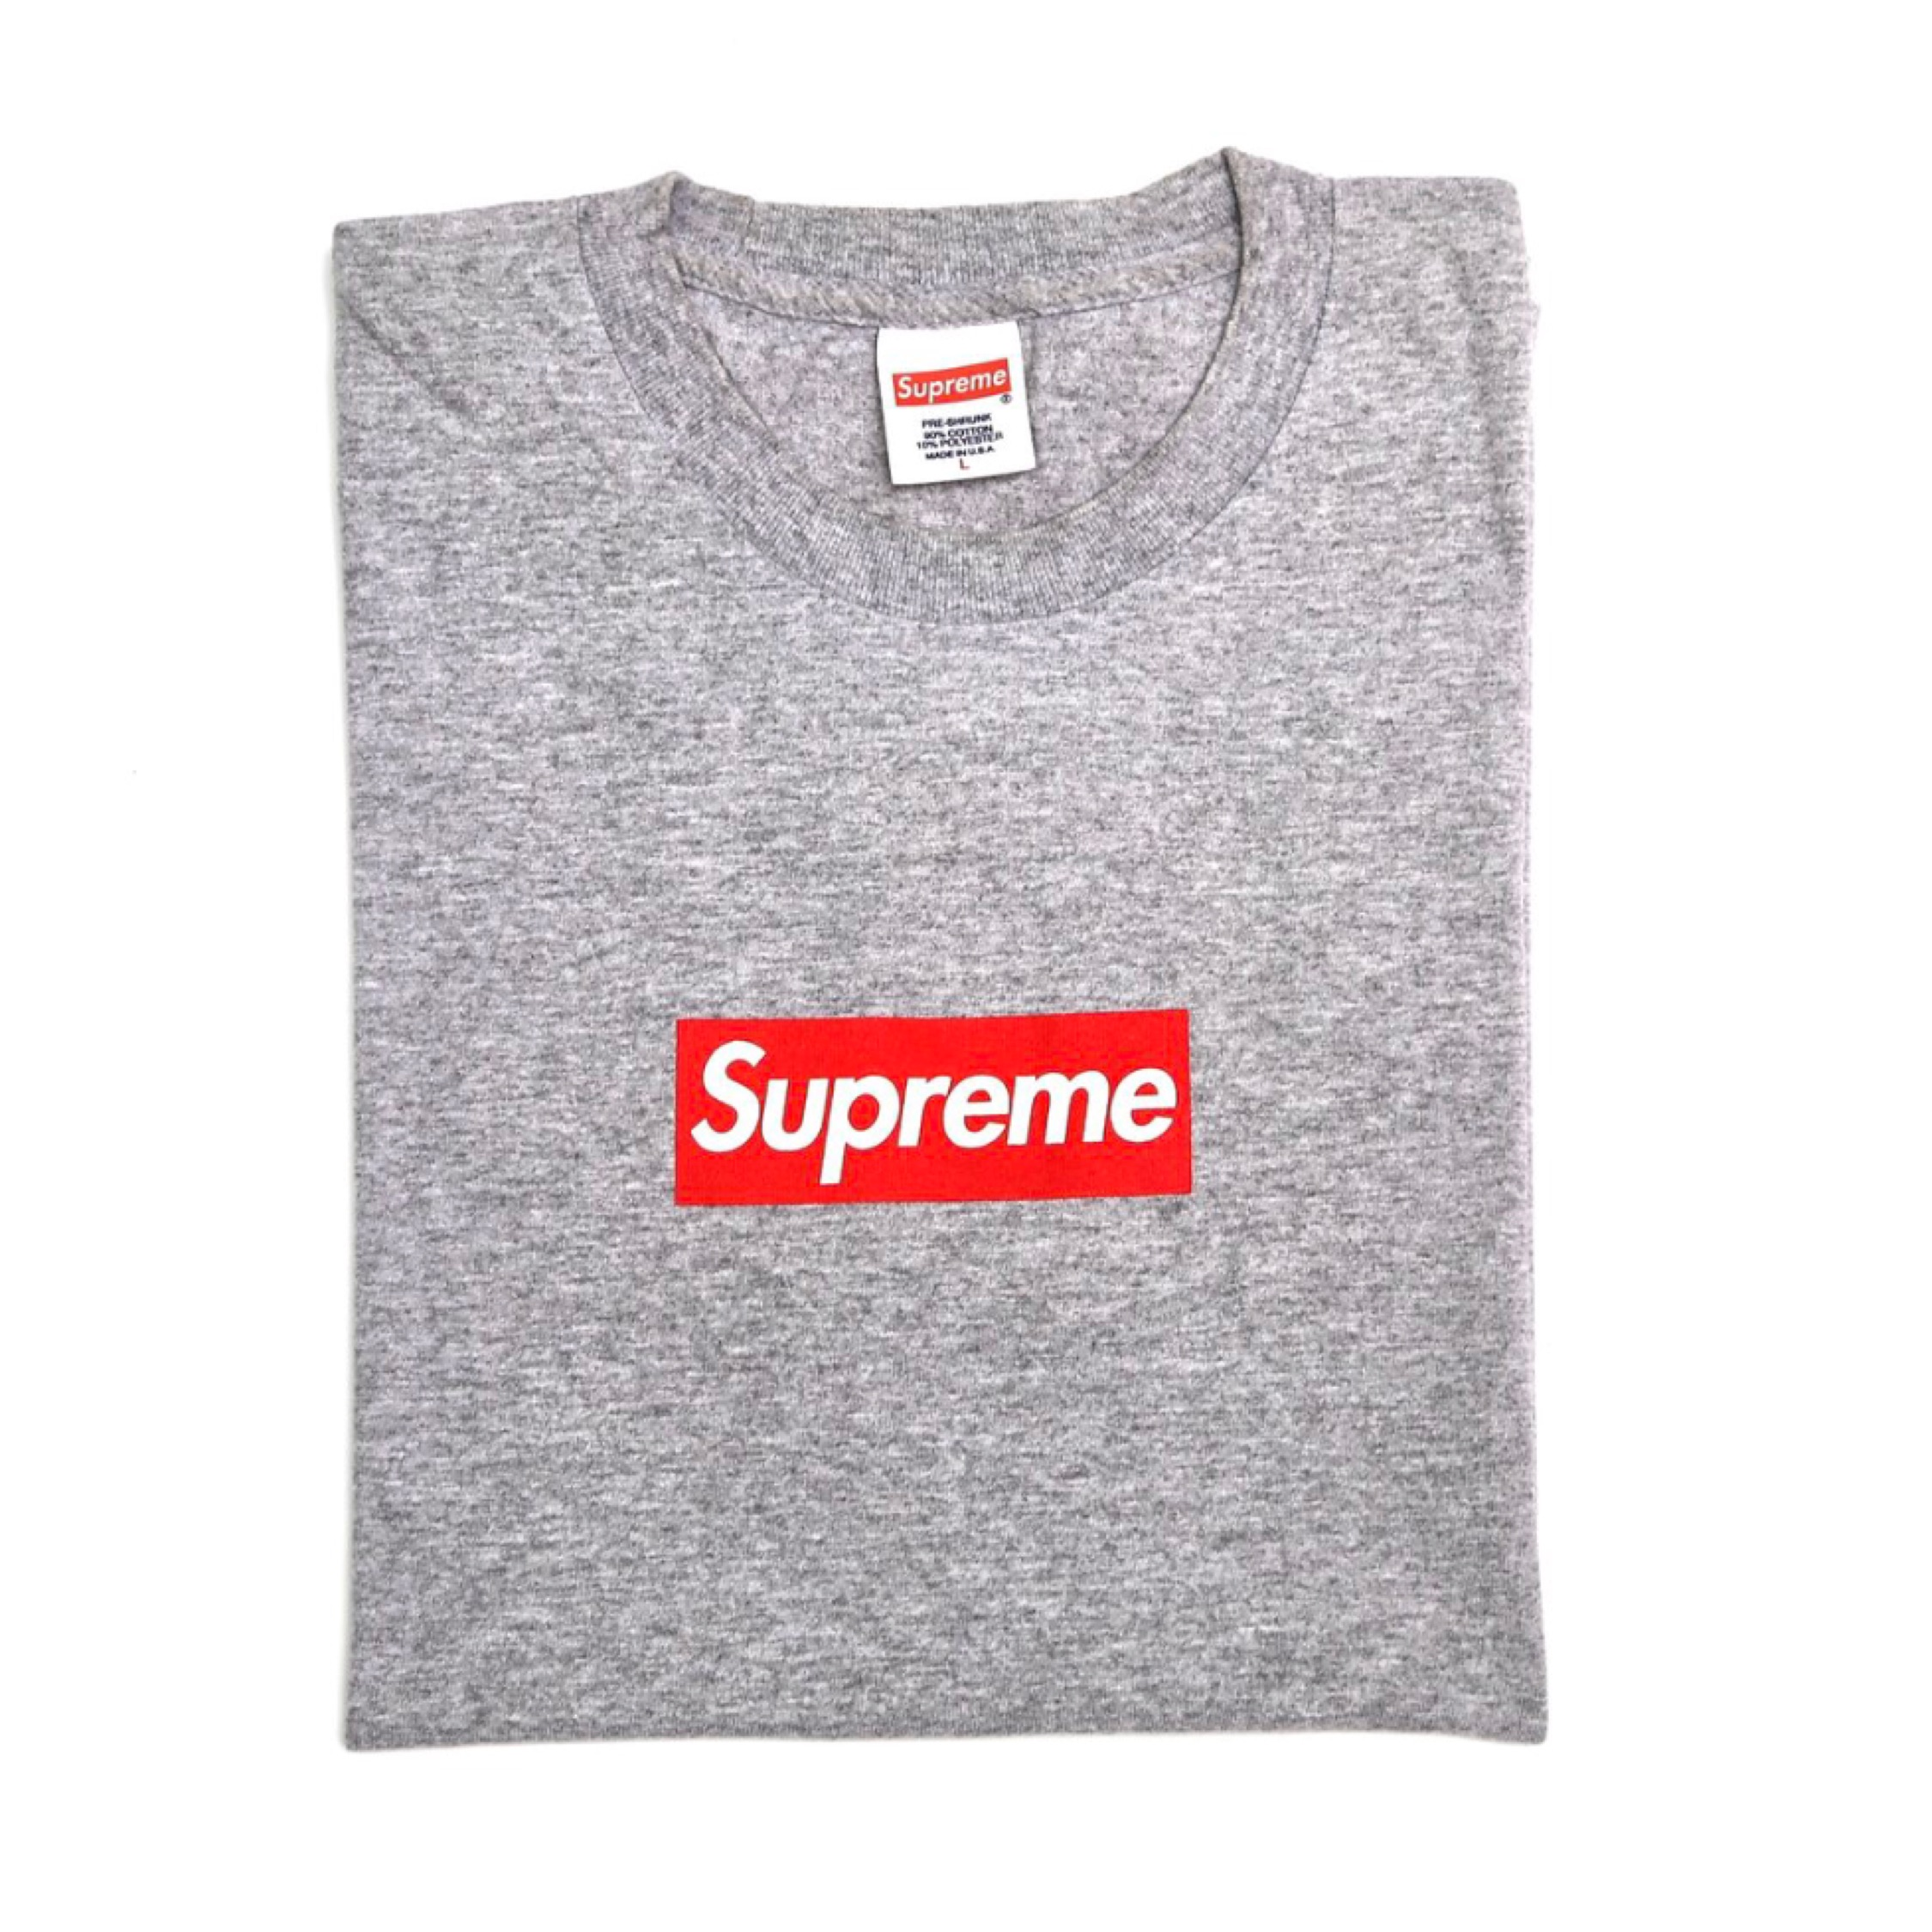 69e64d68e9bc Supreme 20Th Anniversary Box Logo Tee Large